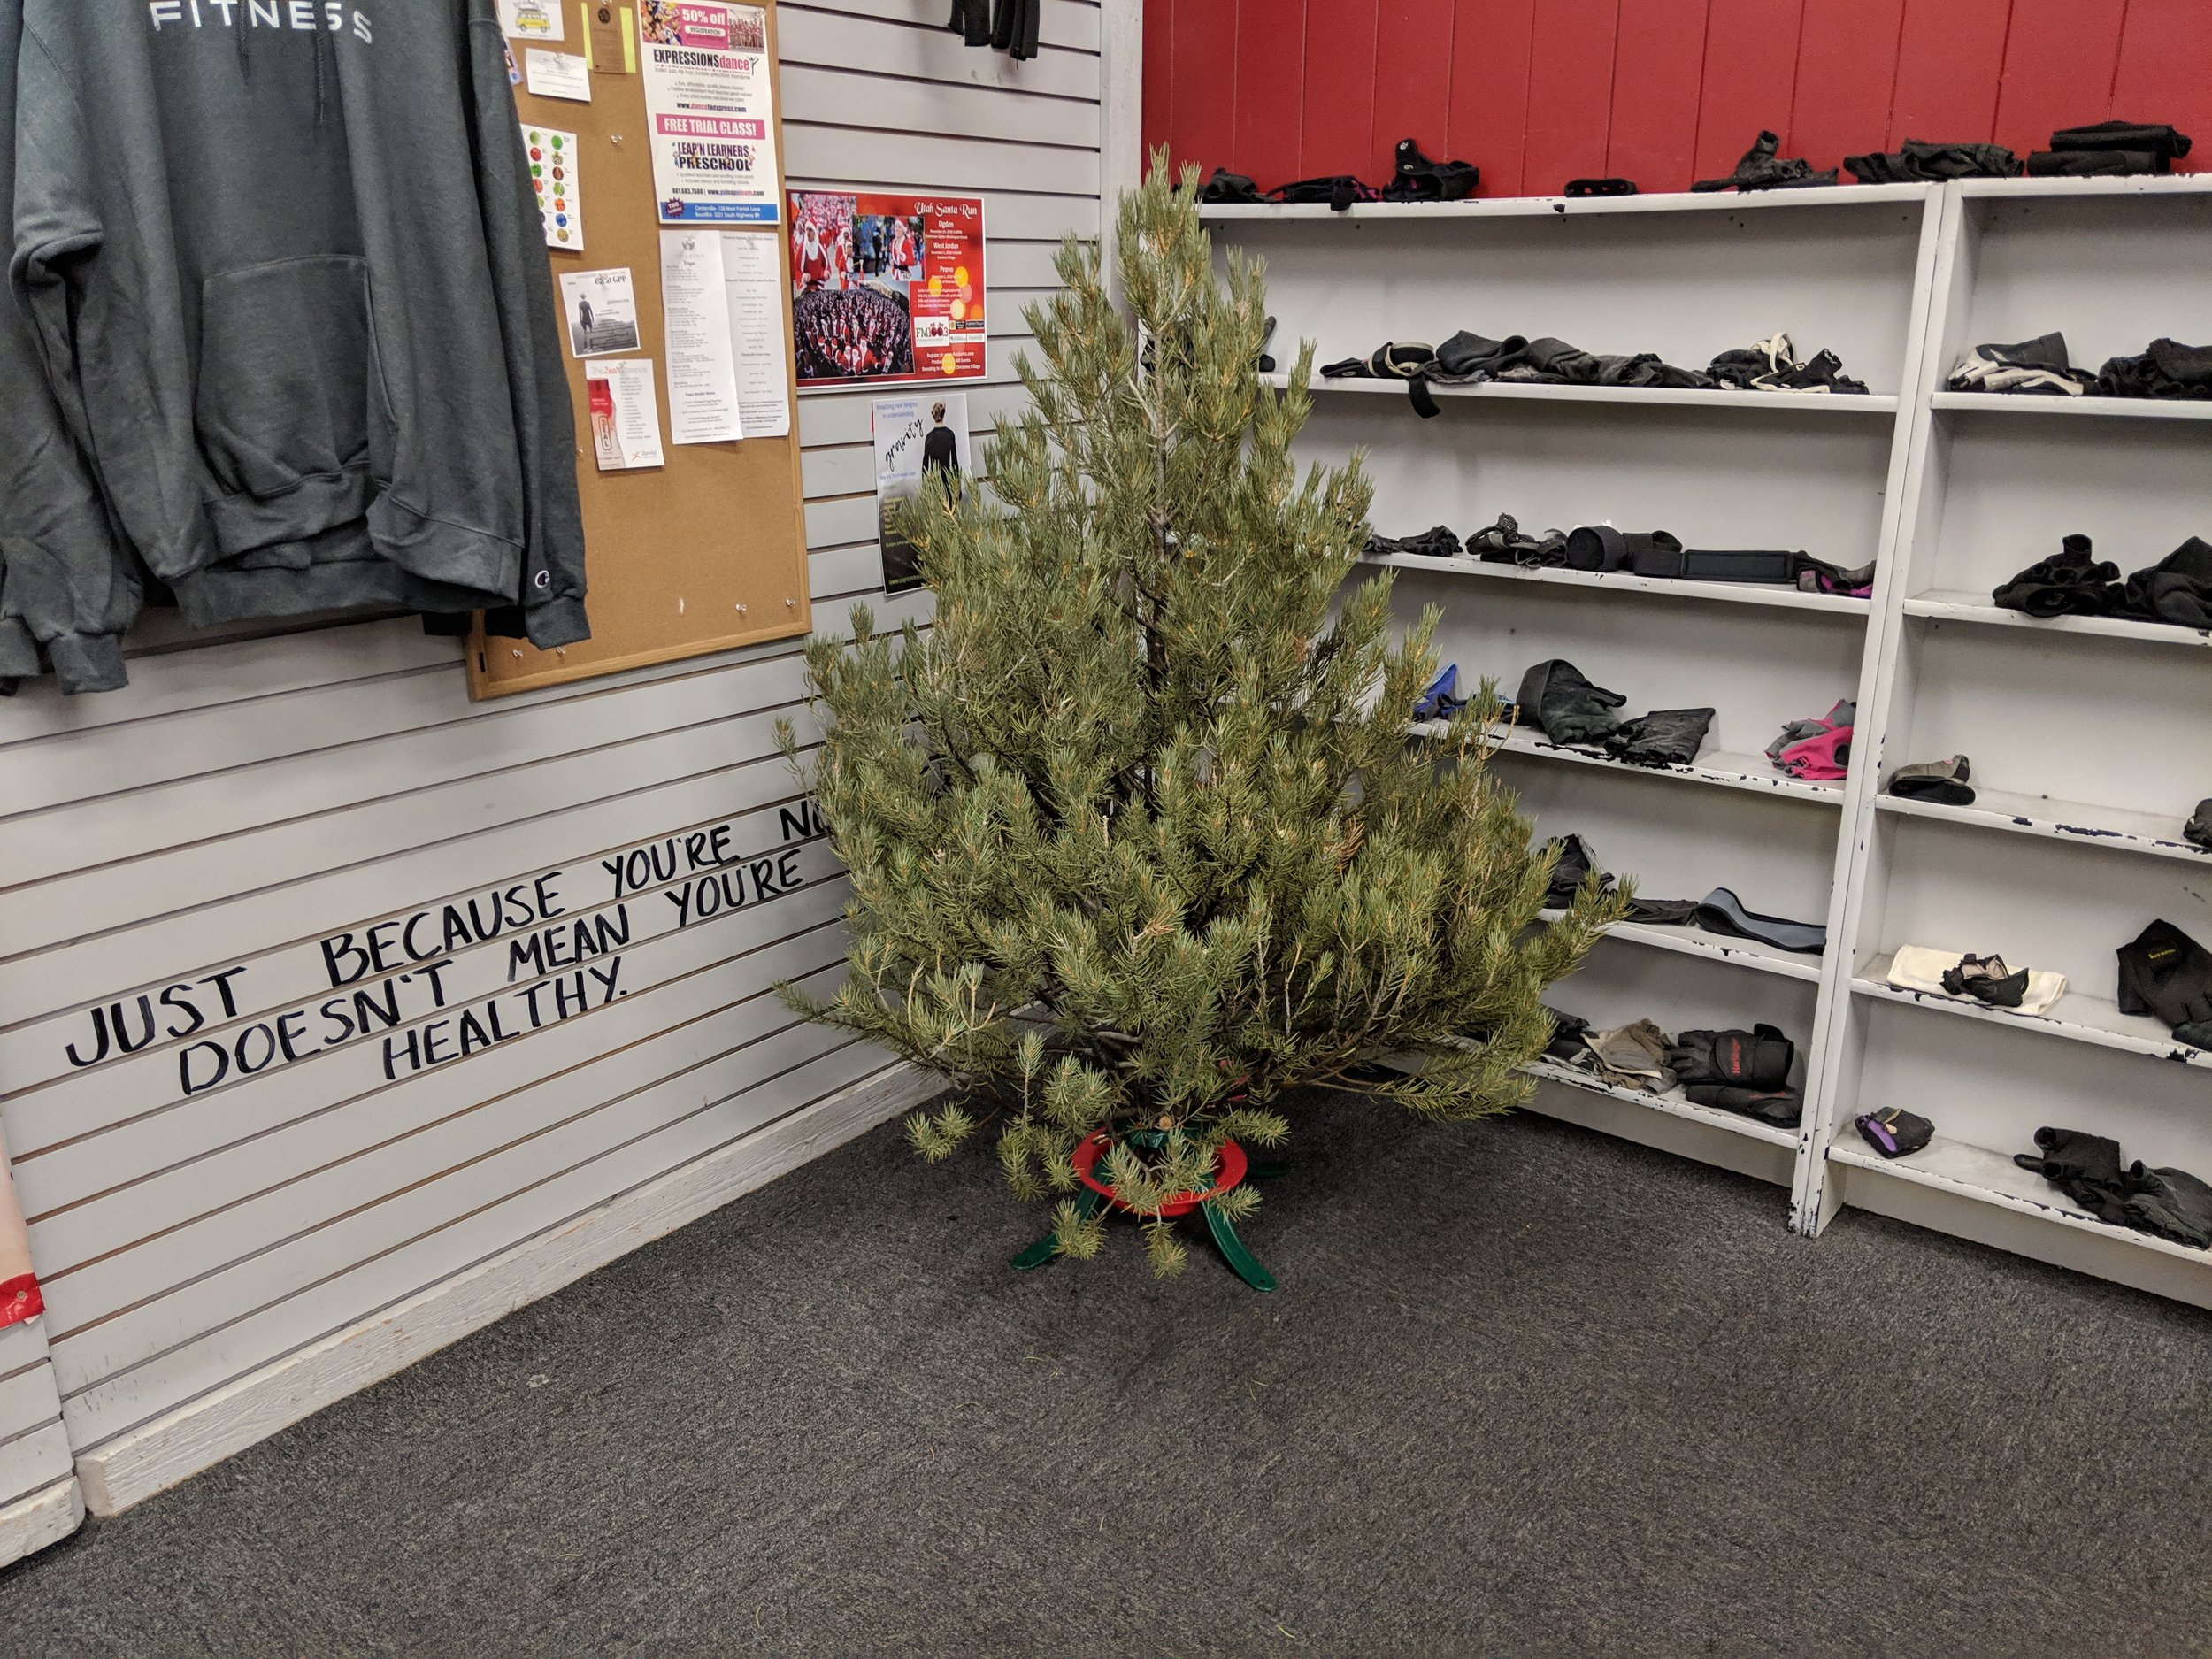 Tree #2! We've never had a tree at the gym for Christmas before and we have exactly NO decorations for it. If you had and ugly, random, spare ornement laying around that you were just going to throw away anyway, we'd welcome it here for the holidays! :)